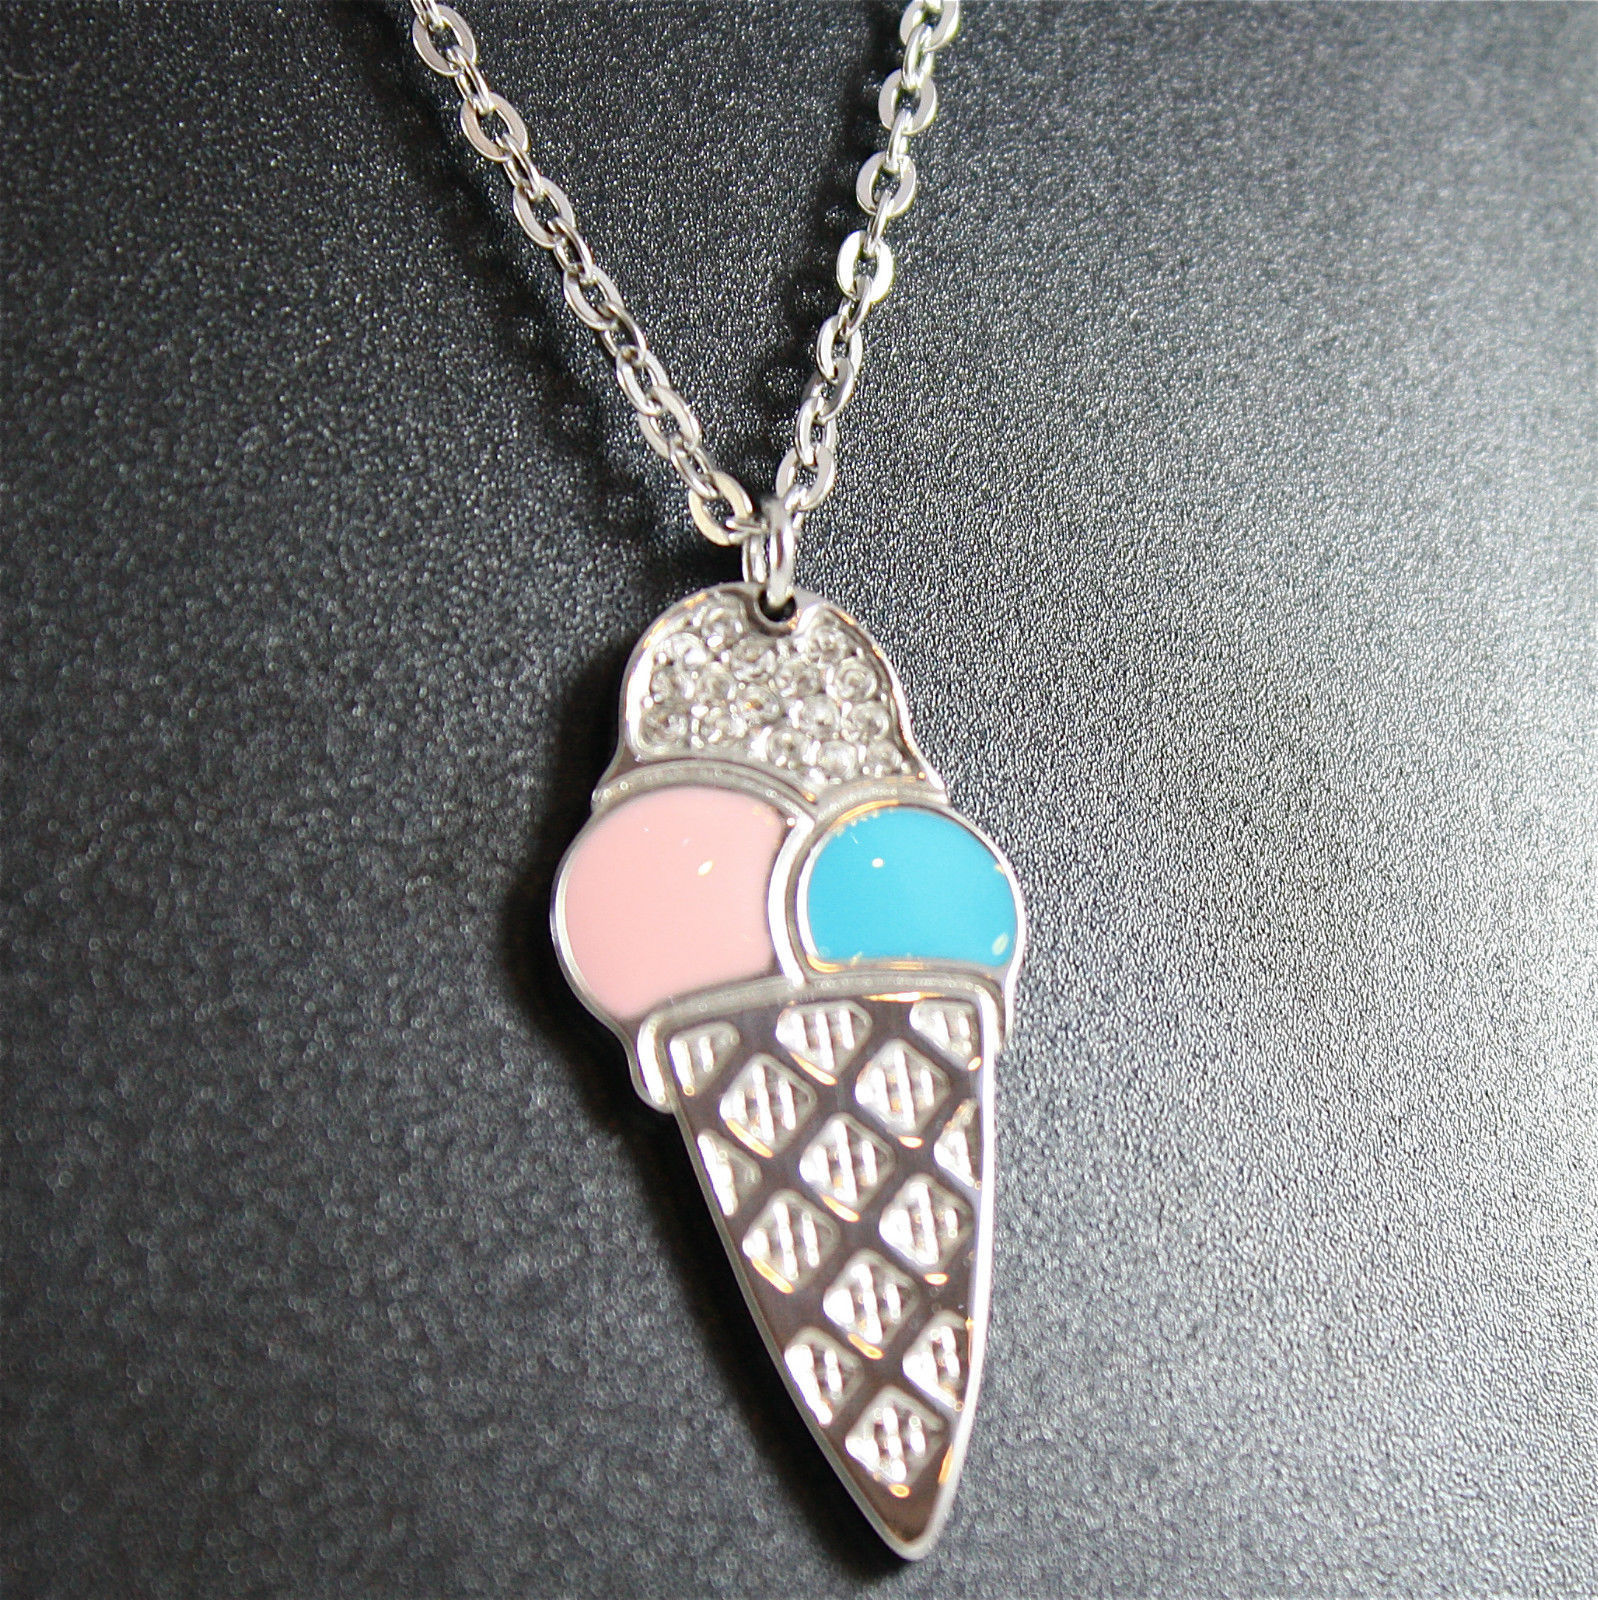 S'AGAPO' NECKLACE, ICE CREAM PENDANT, 316L STEEL, PINK-BLUE GLAZE, CRYSTALS.